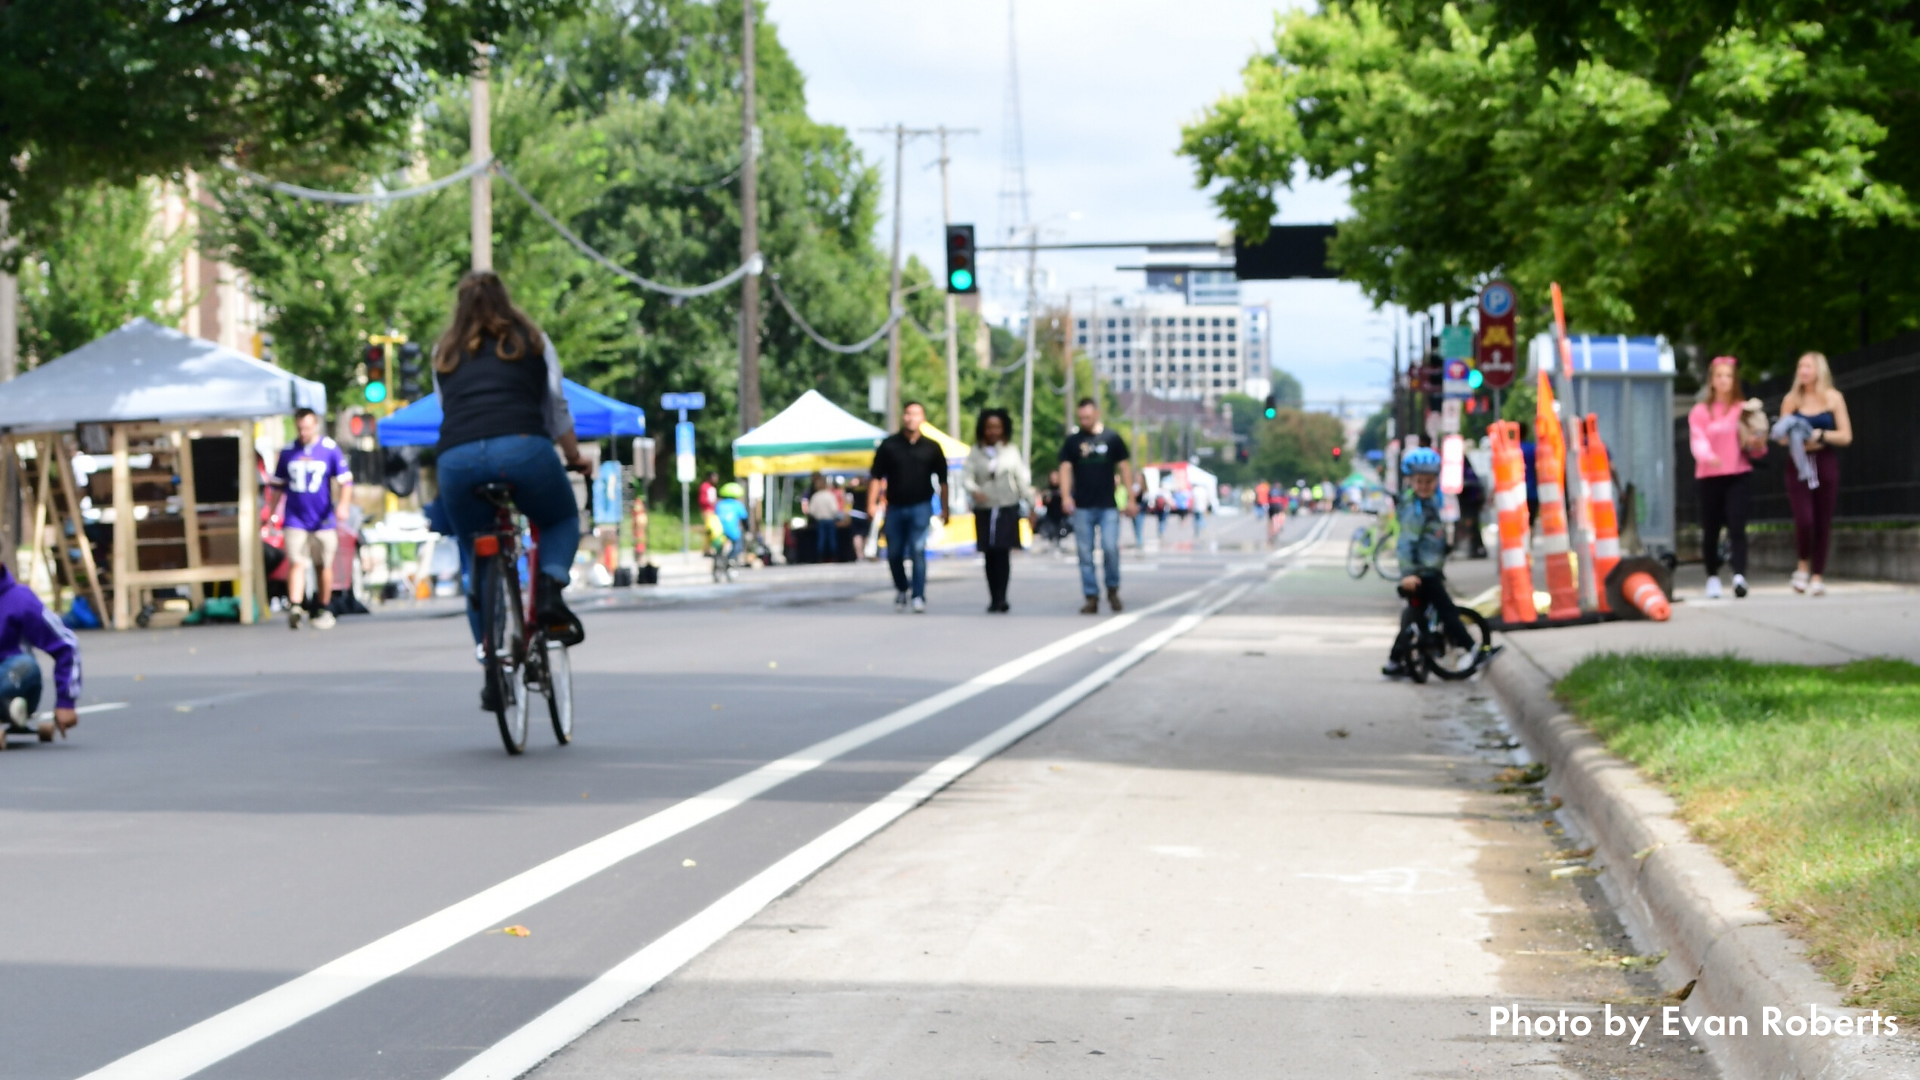 People walking in the street at Open Streets UMN + Motley